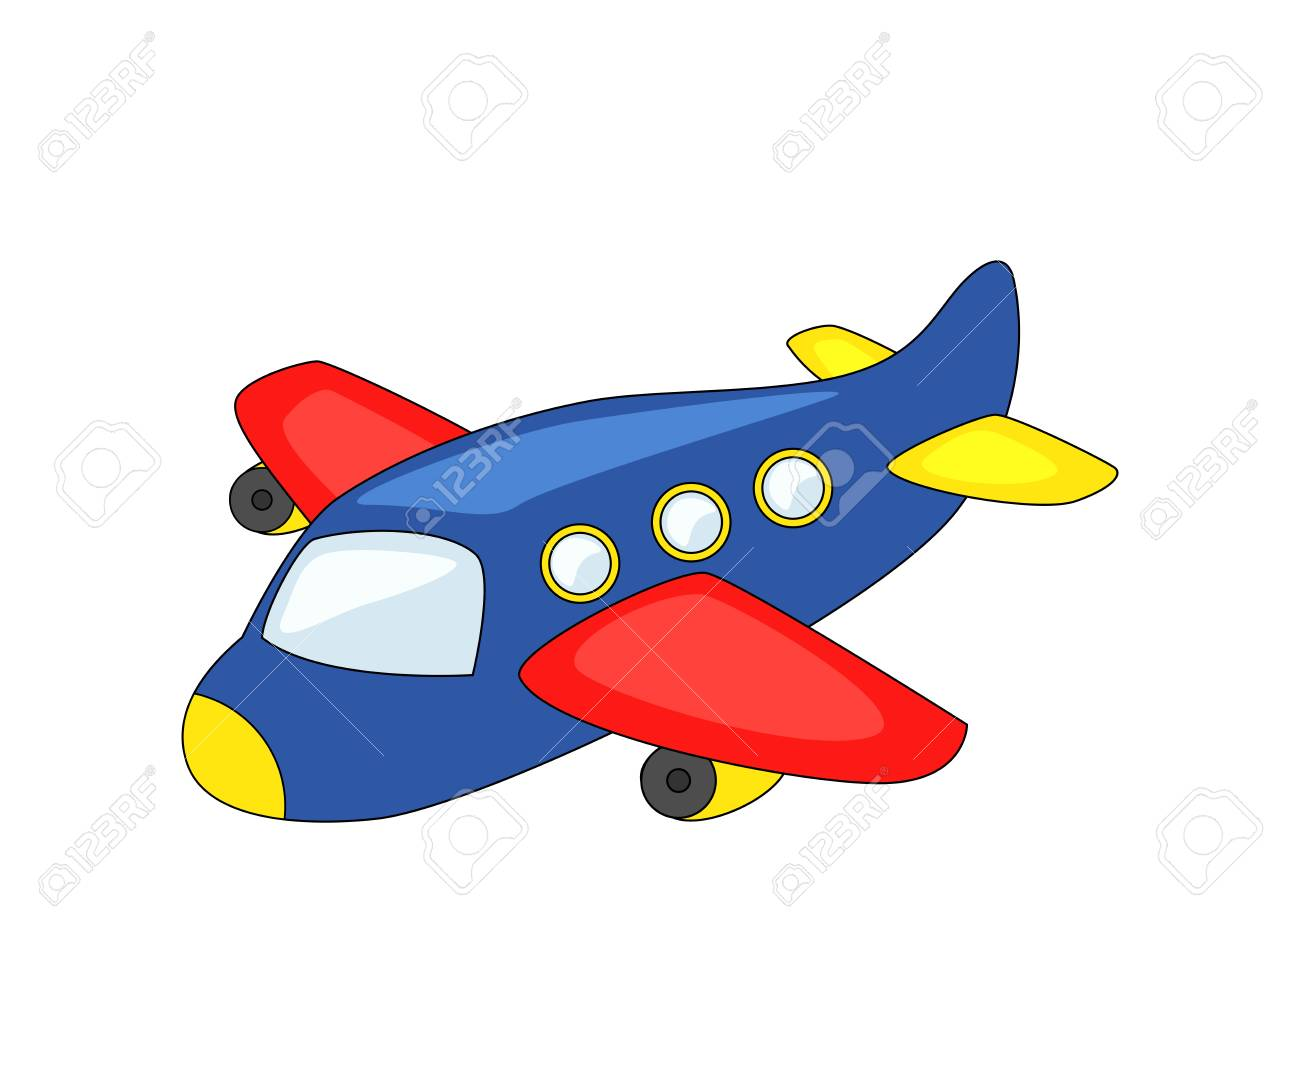 Cute Cartoon Airplane Vector Illustration Isolated On White